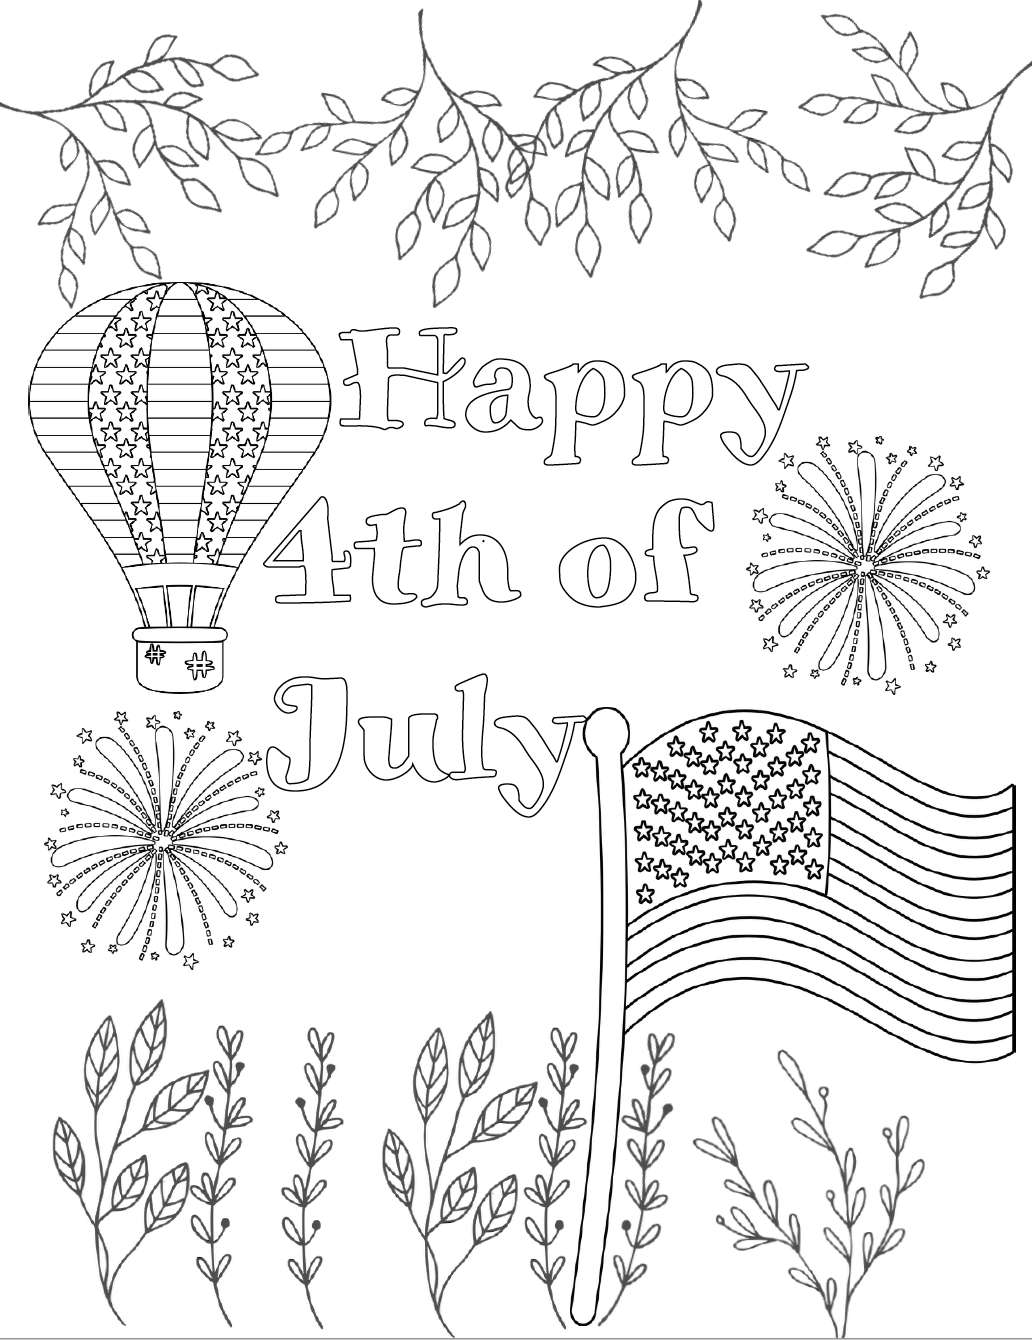 free printable coloring pages 4th of july i love usa coloring pages july 4 independence day coloring july printable of free 4th pages